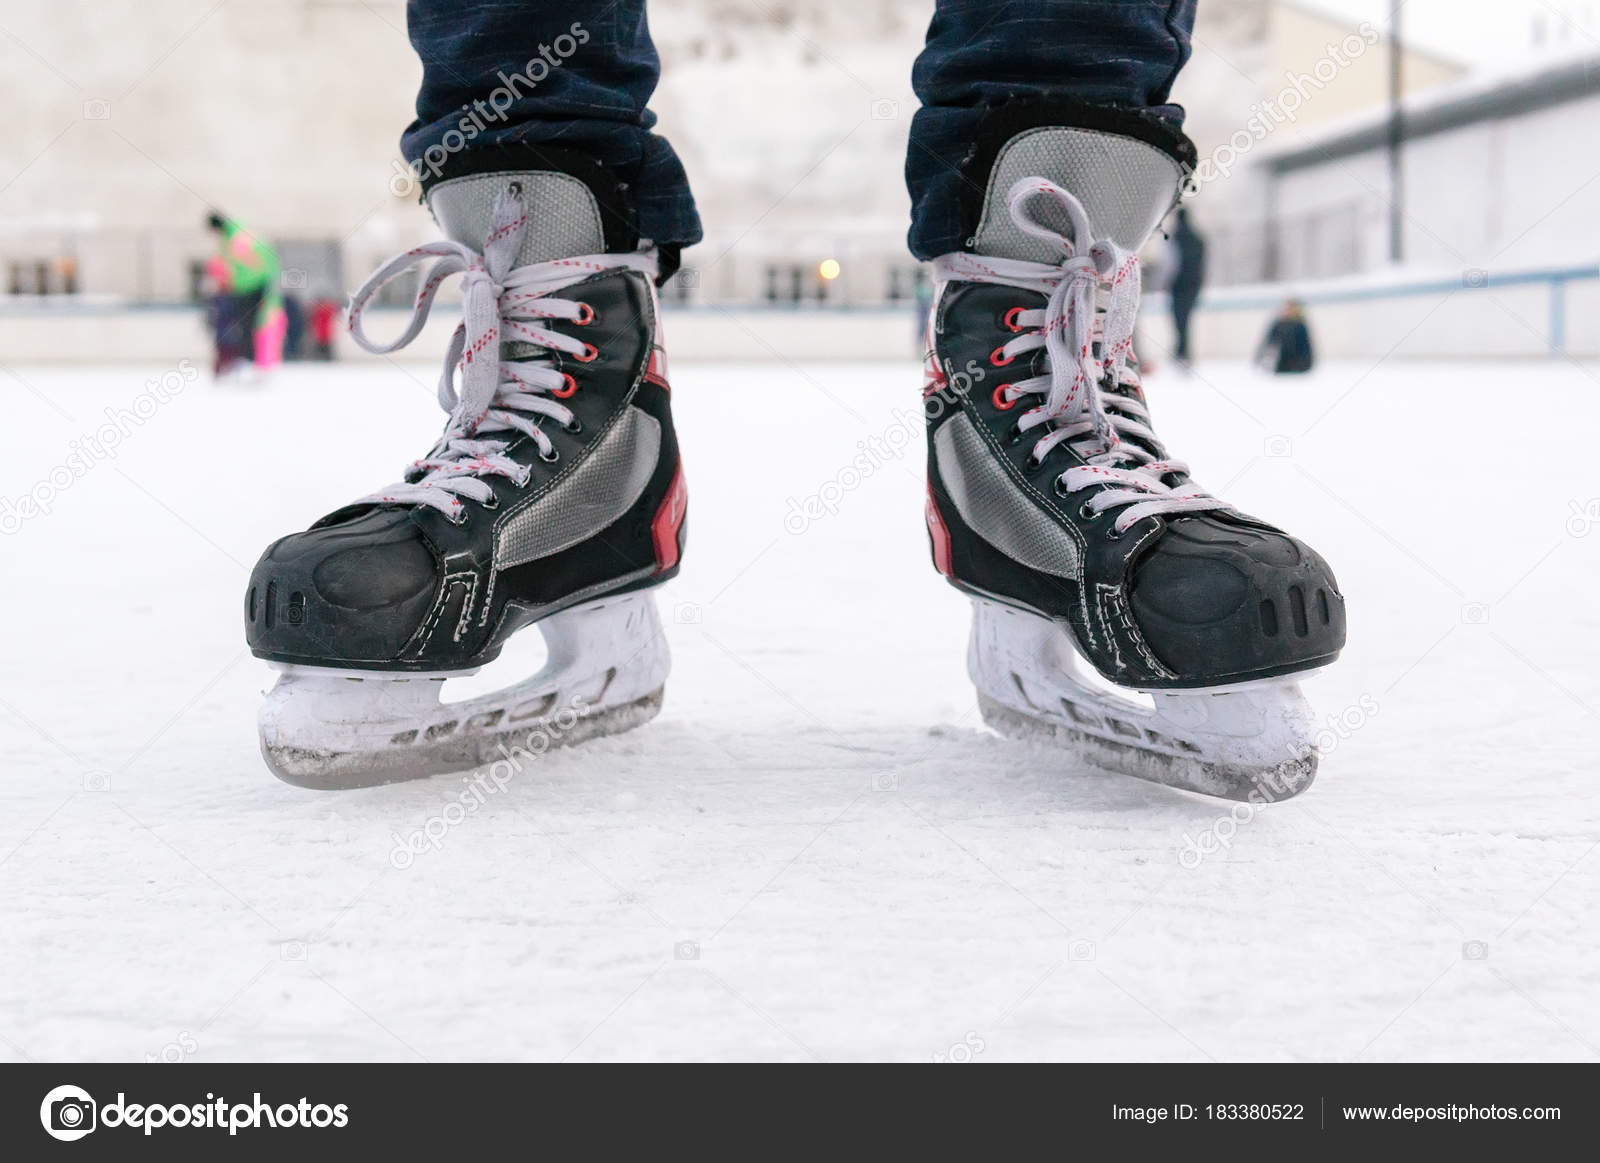 Old Sports Hockey Skates On A Man S Leg On The Ice Stock Photo